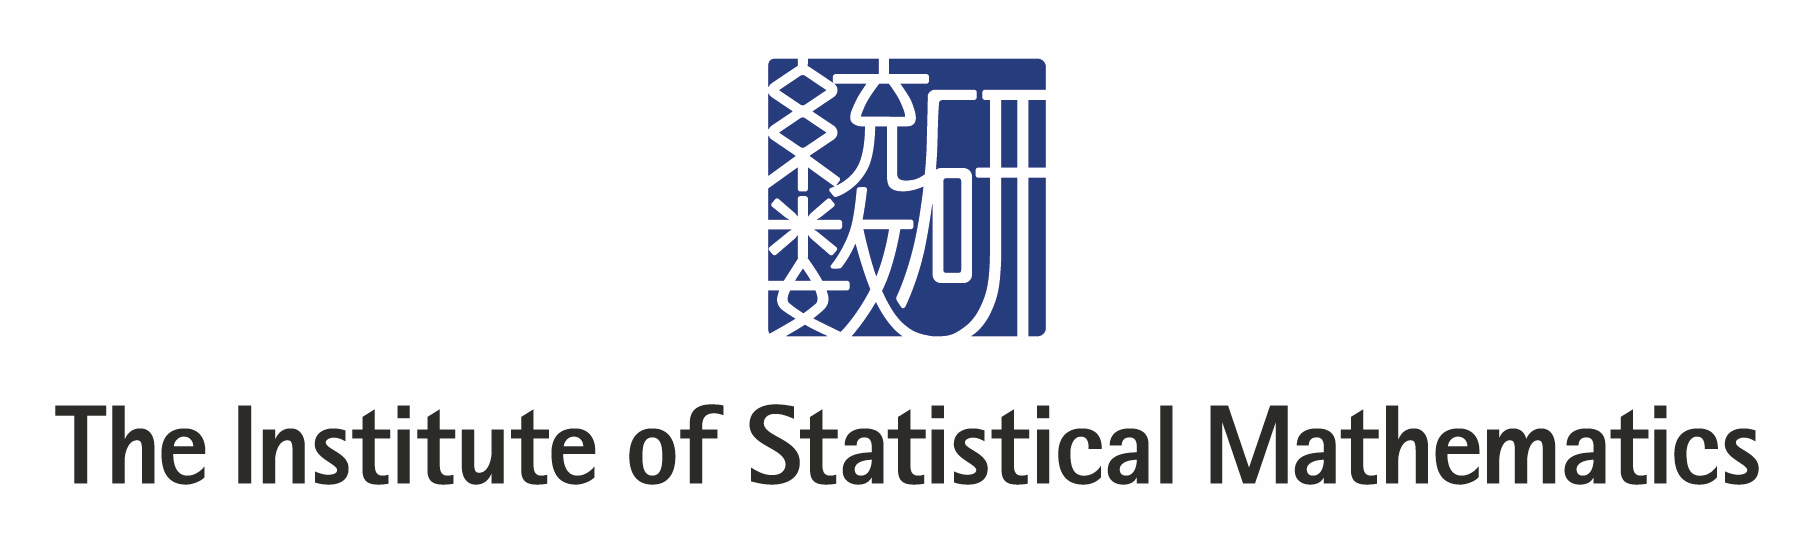 Logo: The Institute of Statistical Mathematics